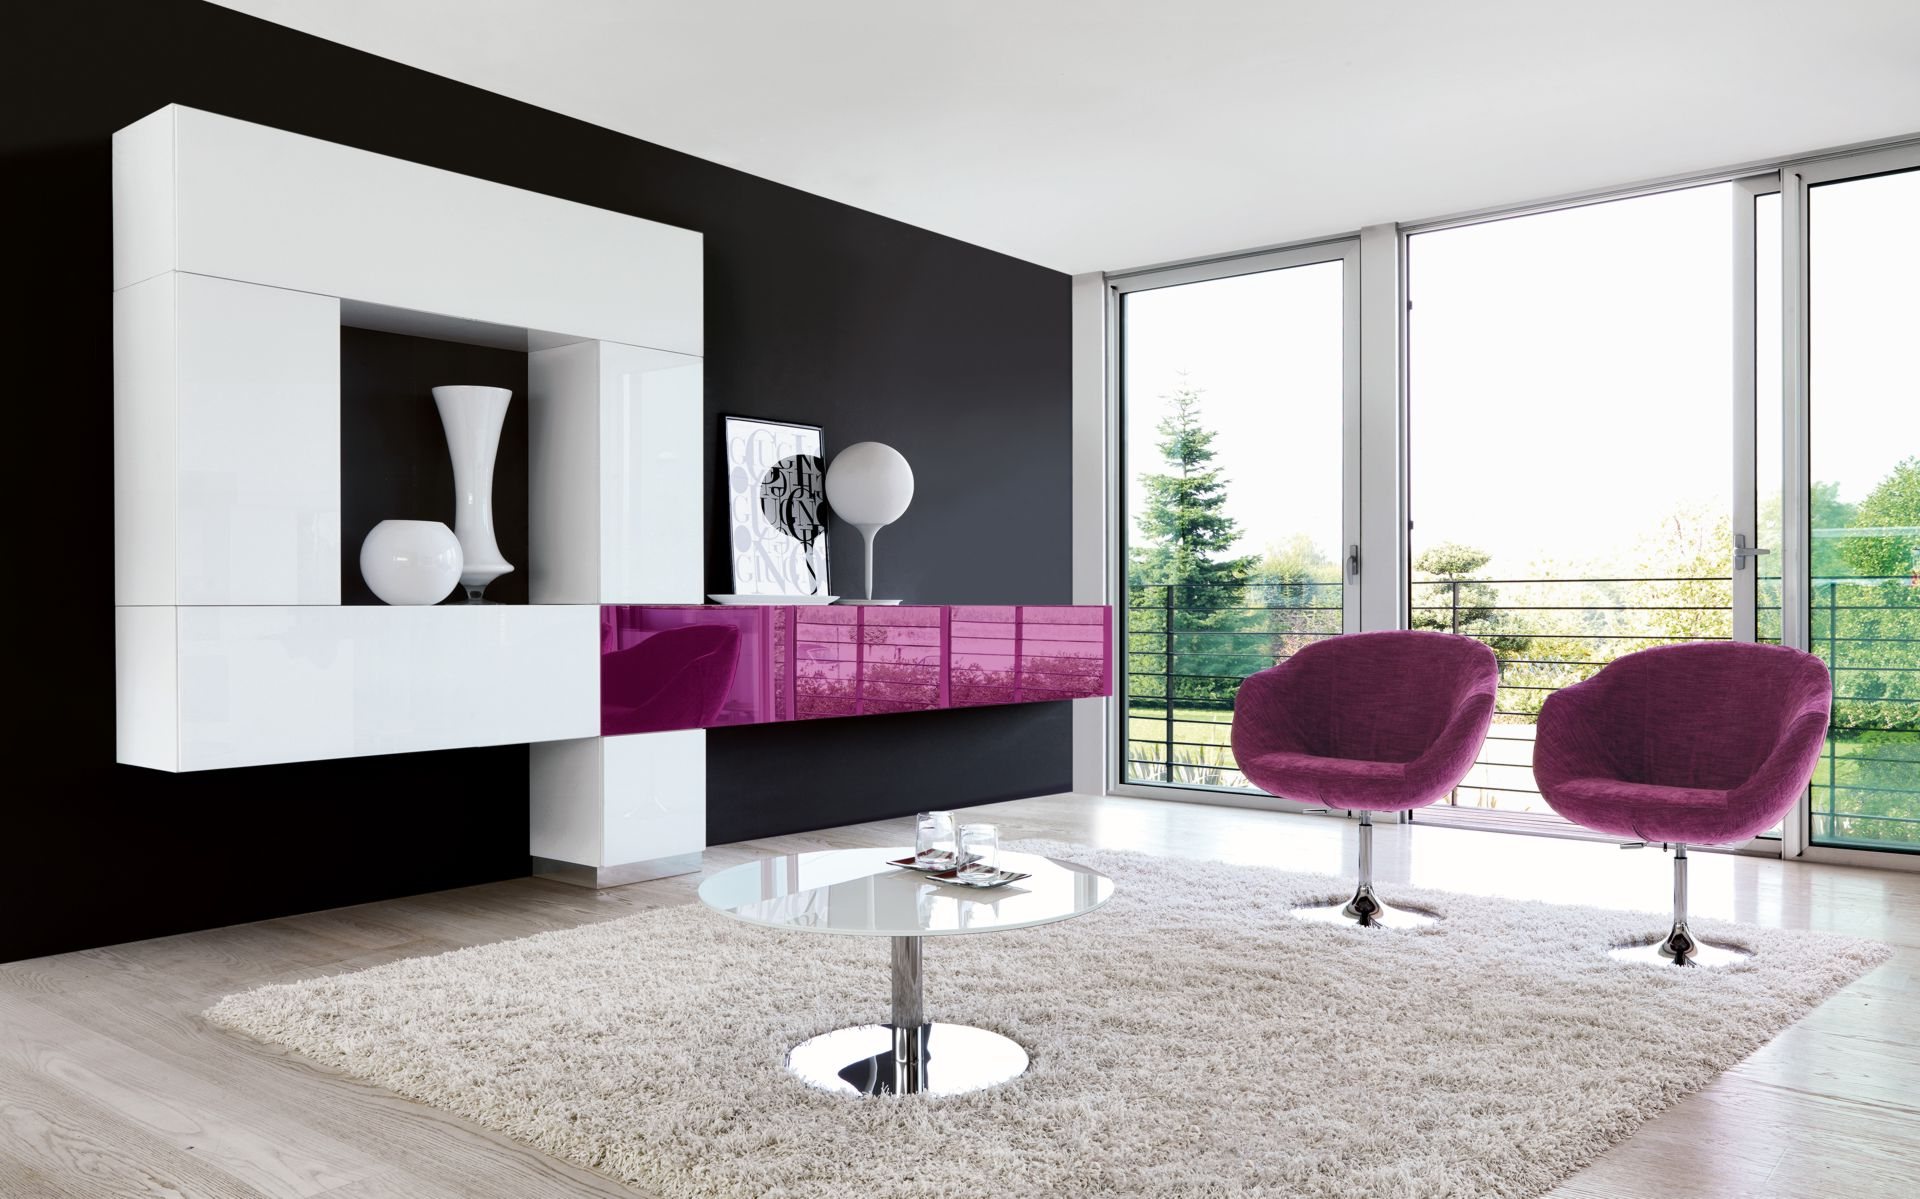 Design 7 idee innovative per la tua casa - Idee design casa ...